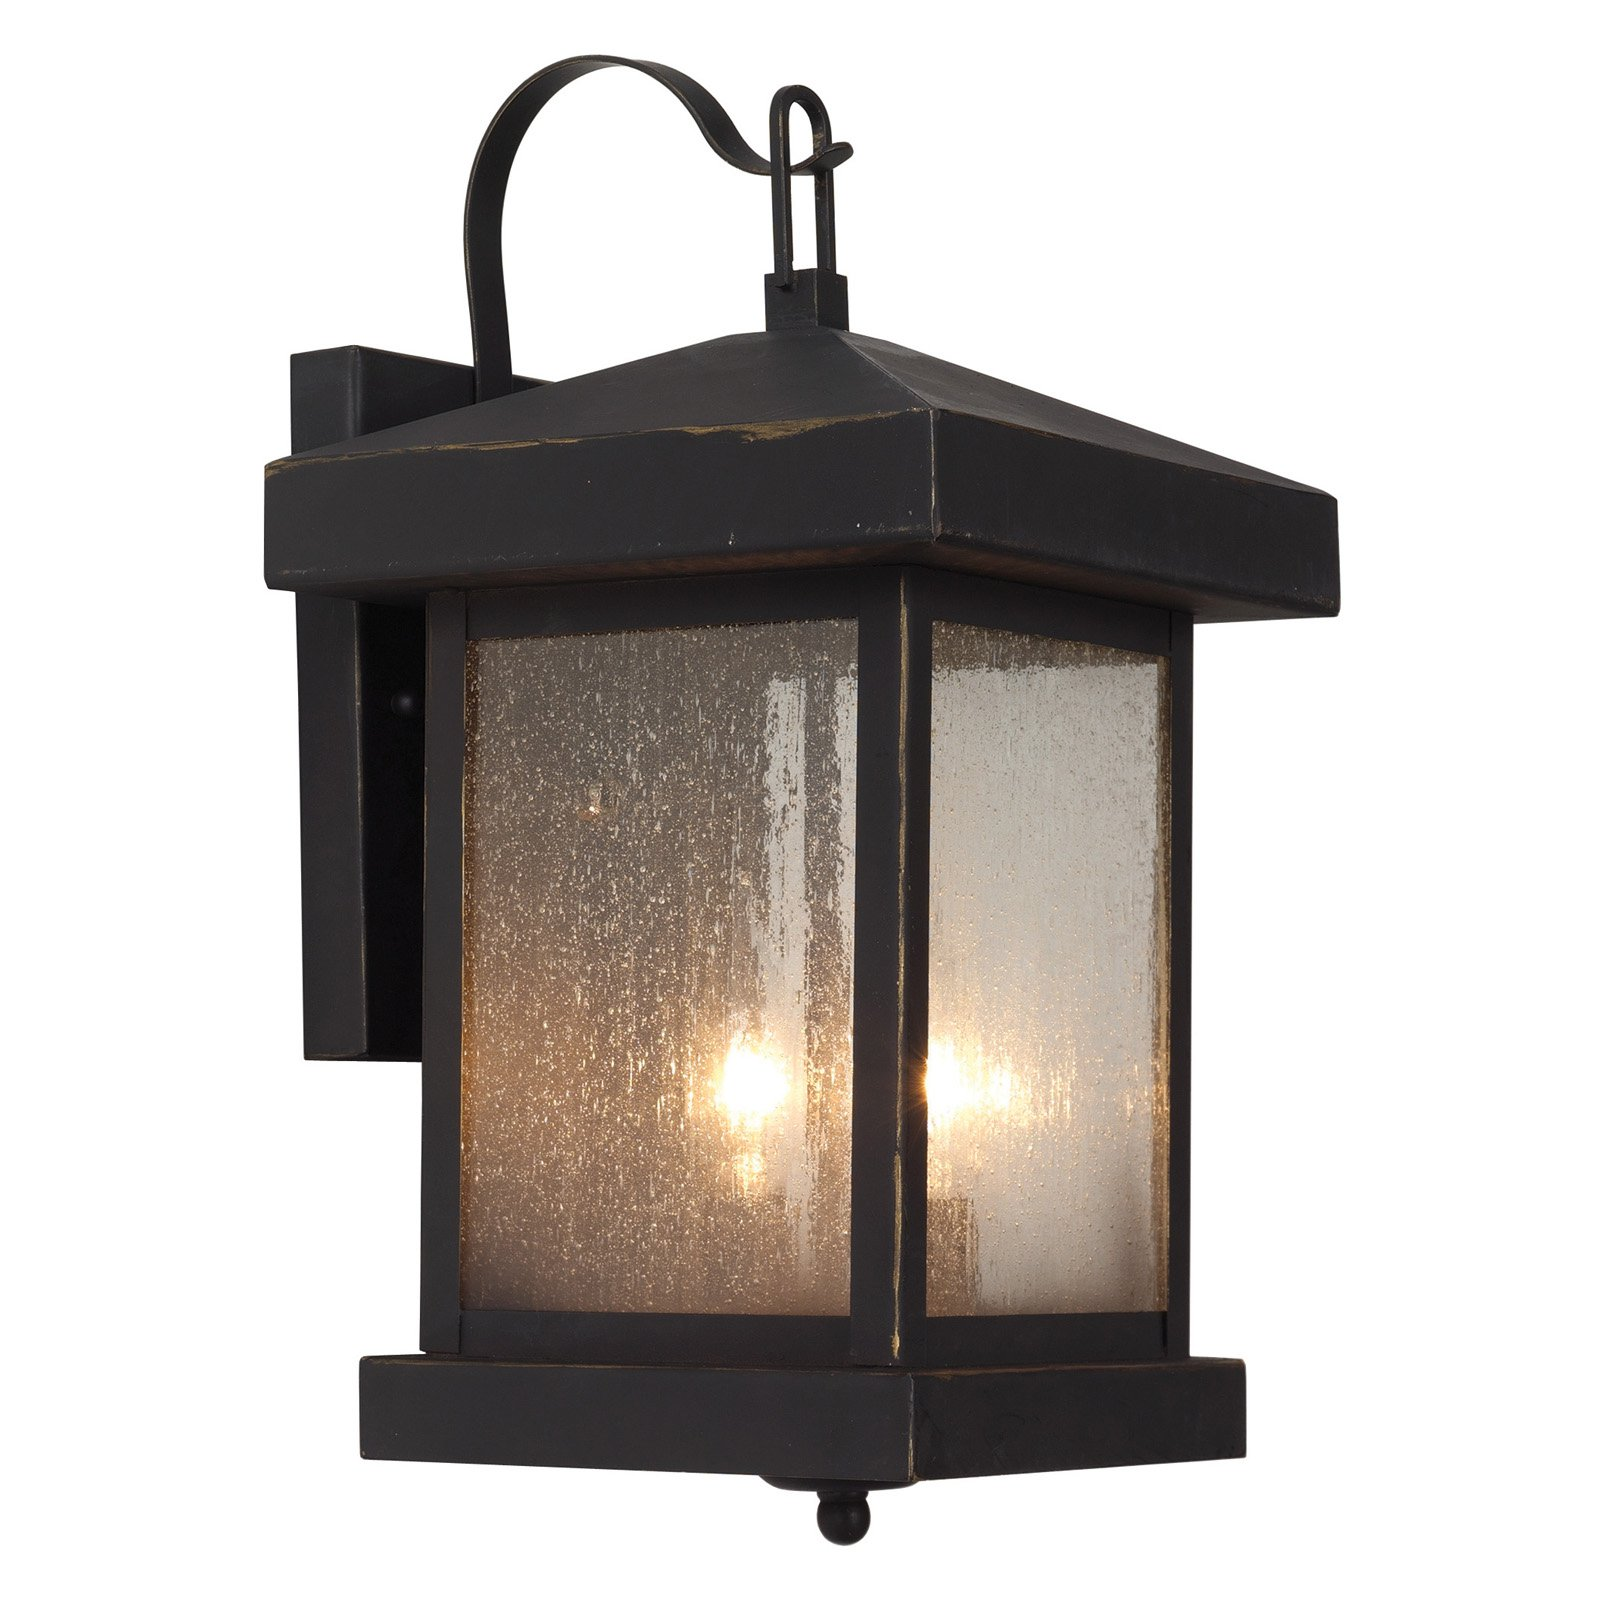 Trans Globe 45641 WB Coach Lantern - Weather Bronze - 8W in.